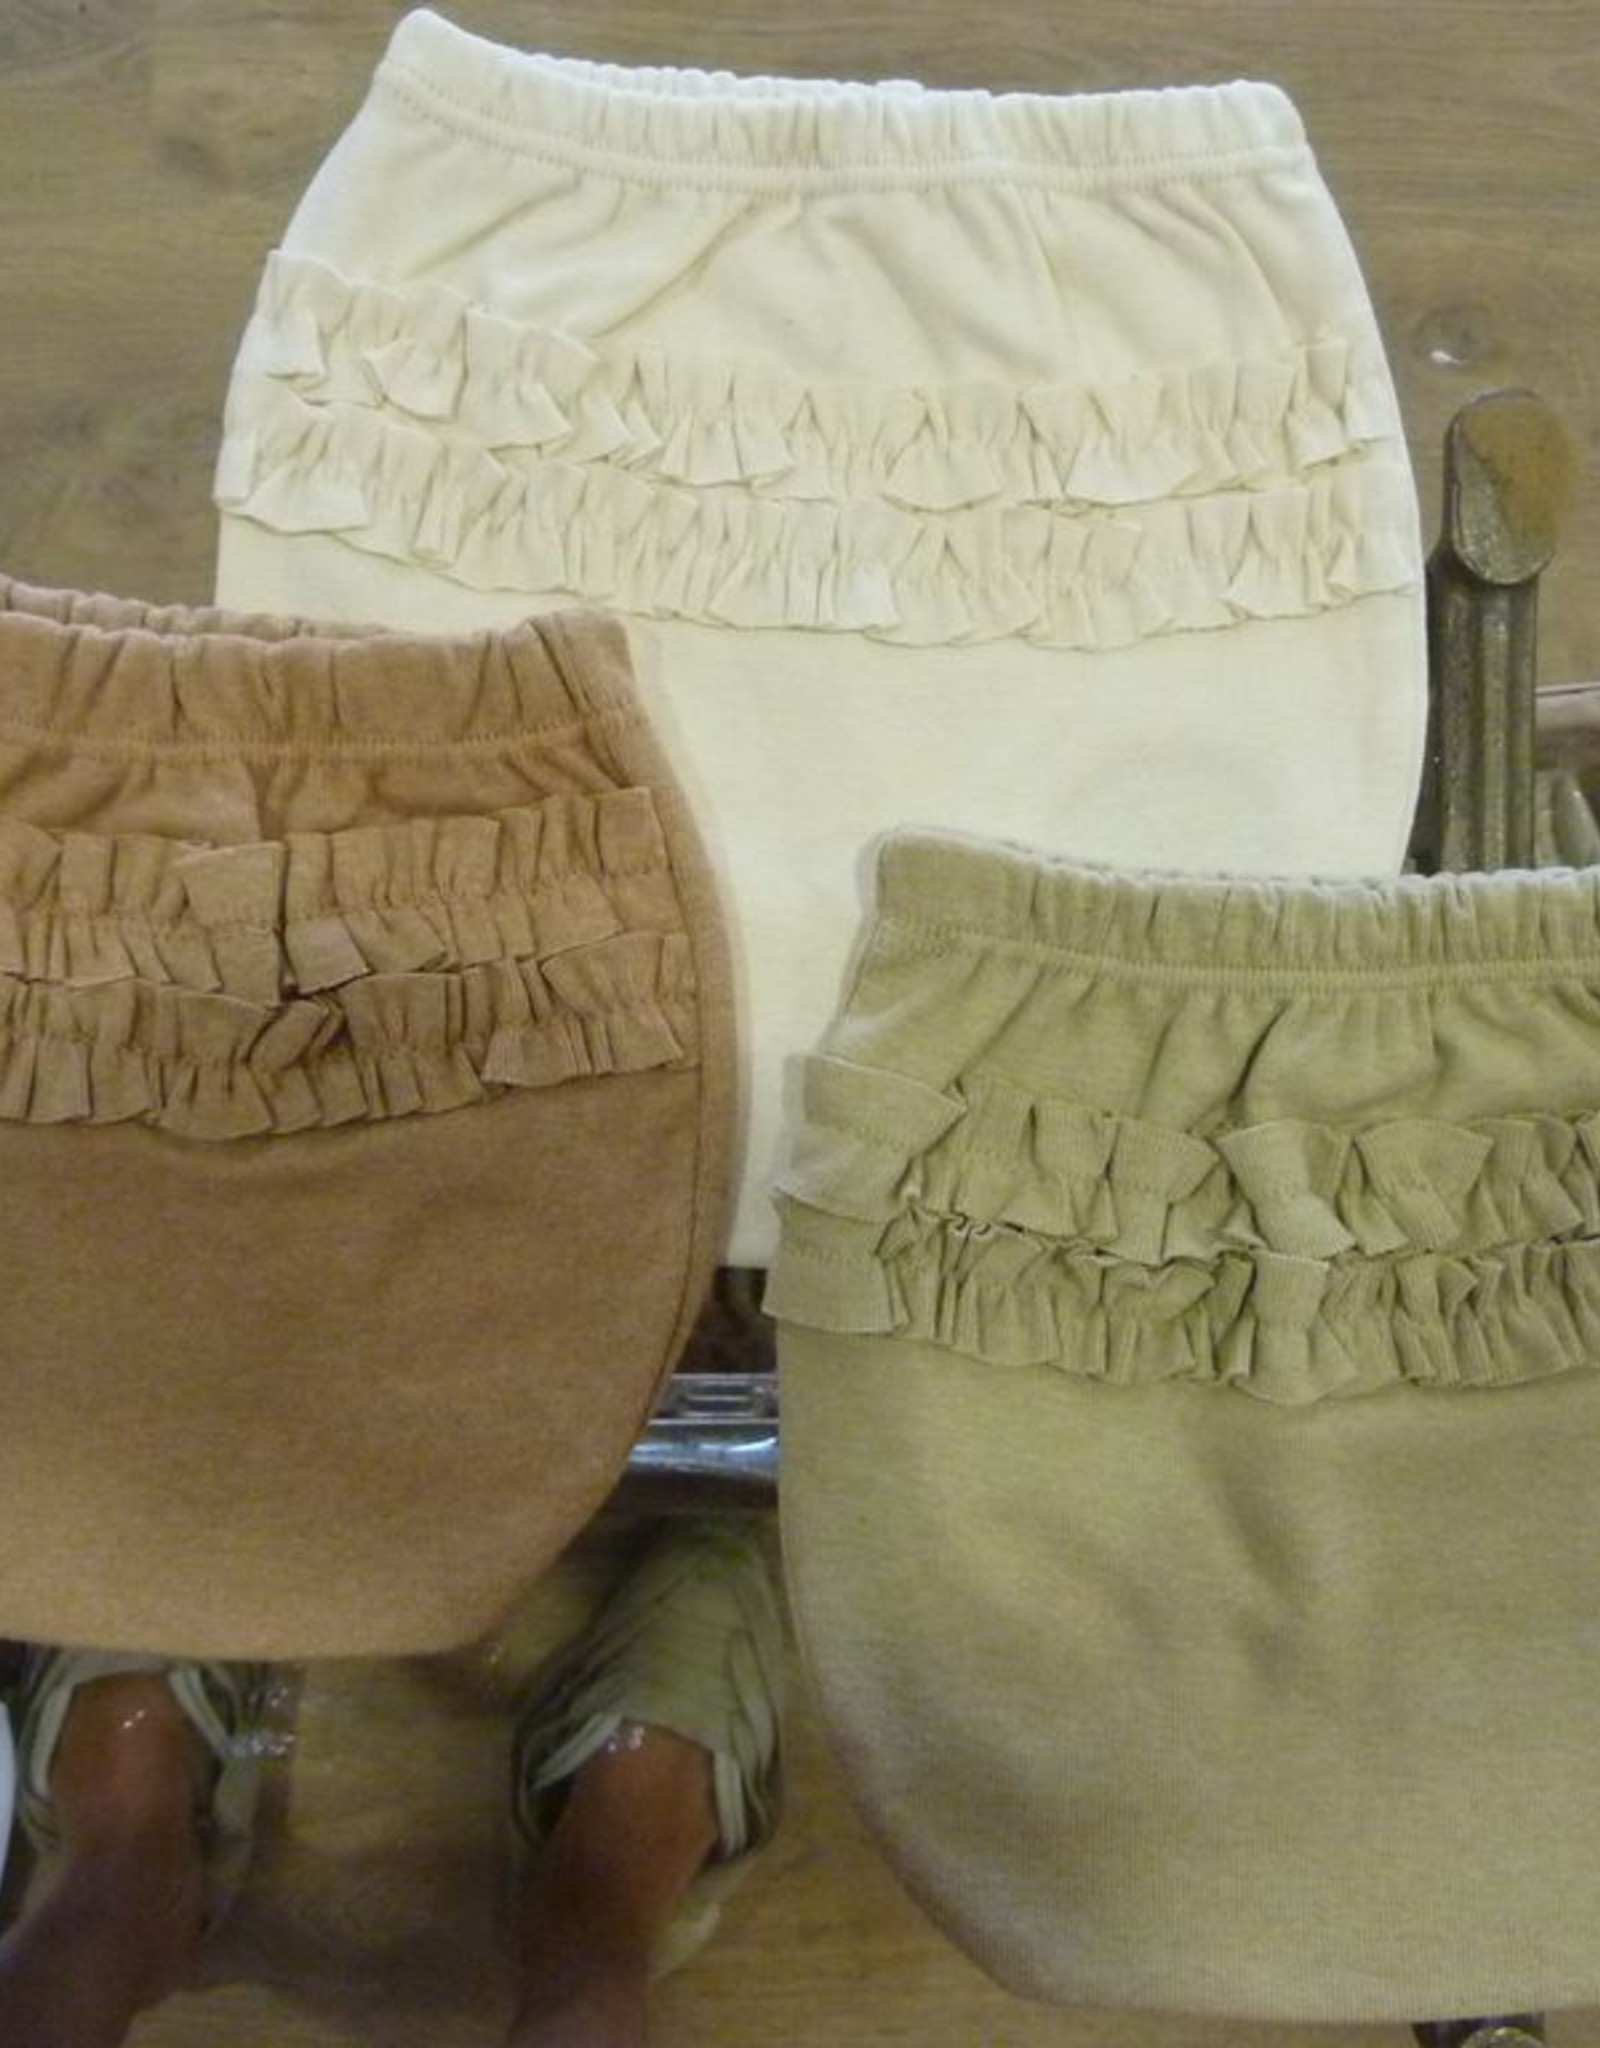 Baby diaper with frills. sizes 1, 3, 6 months.